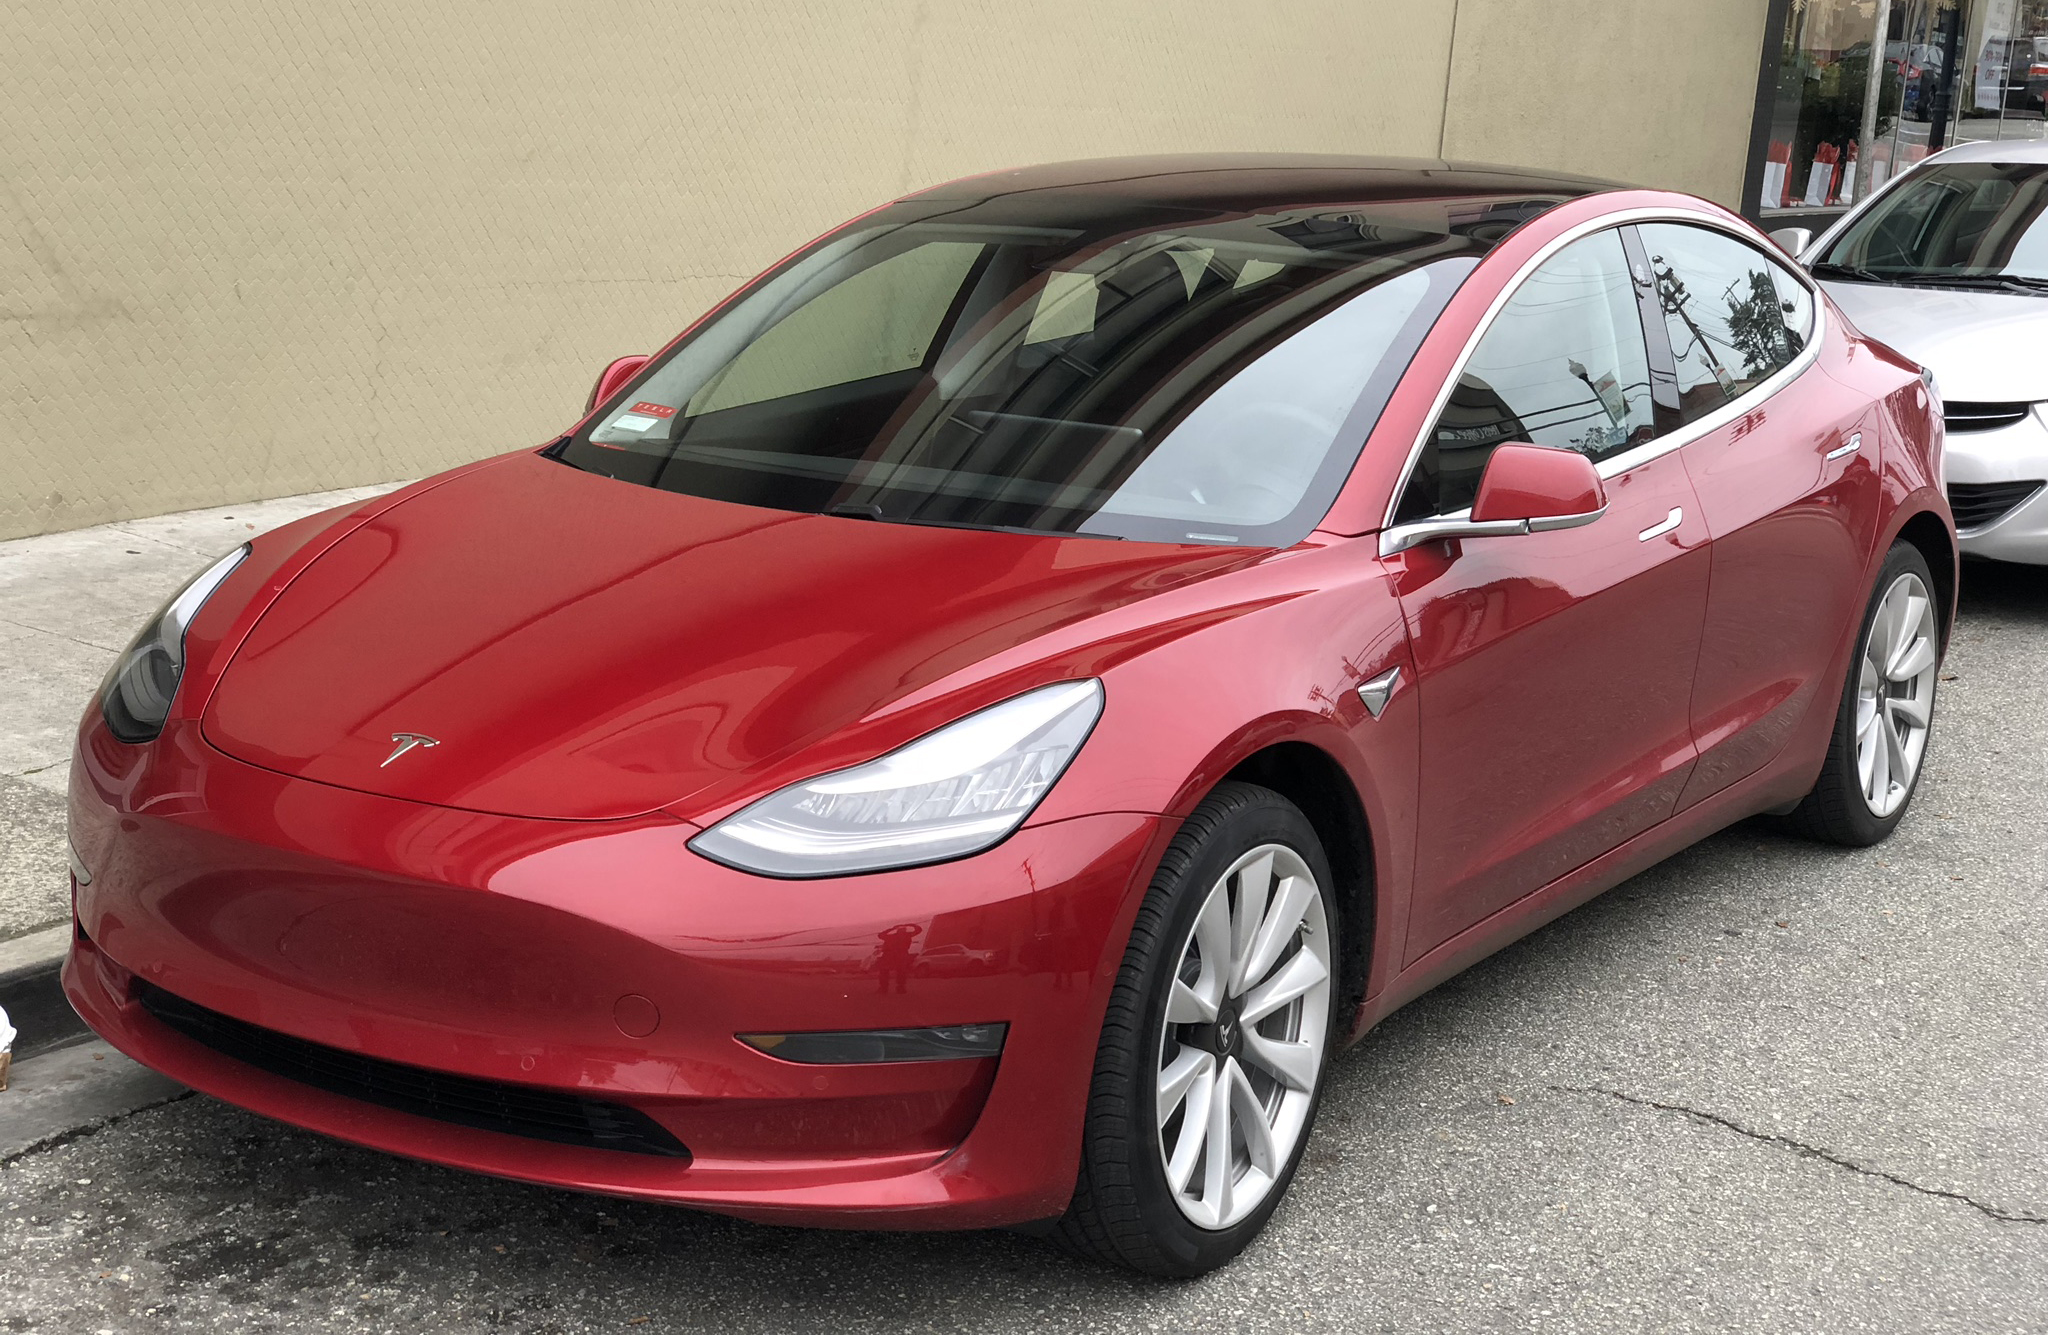 Tesla Model 3 systems hackable? Here is all you need to know